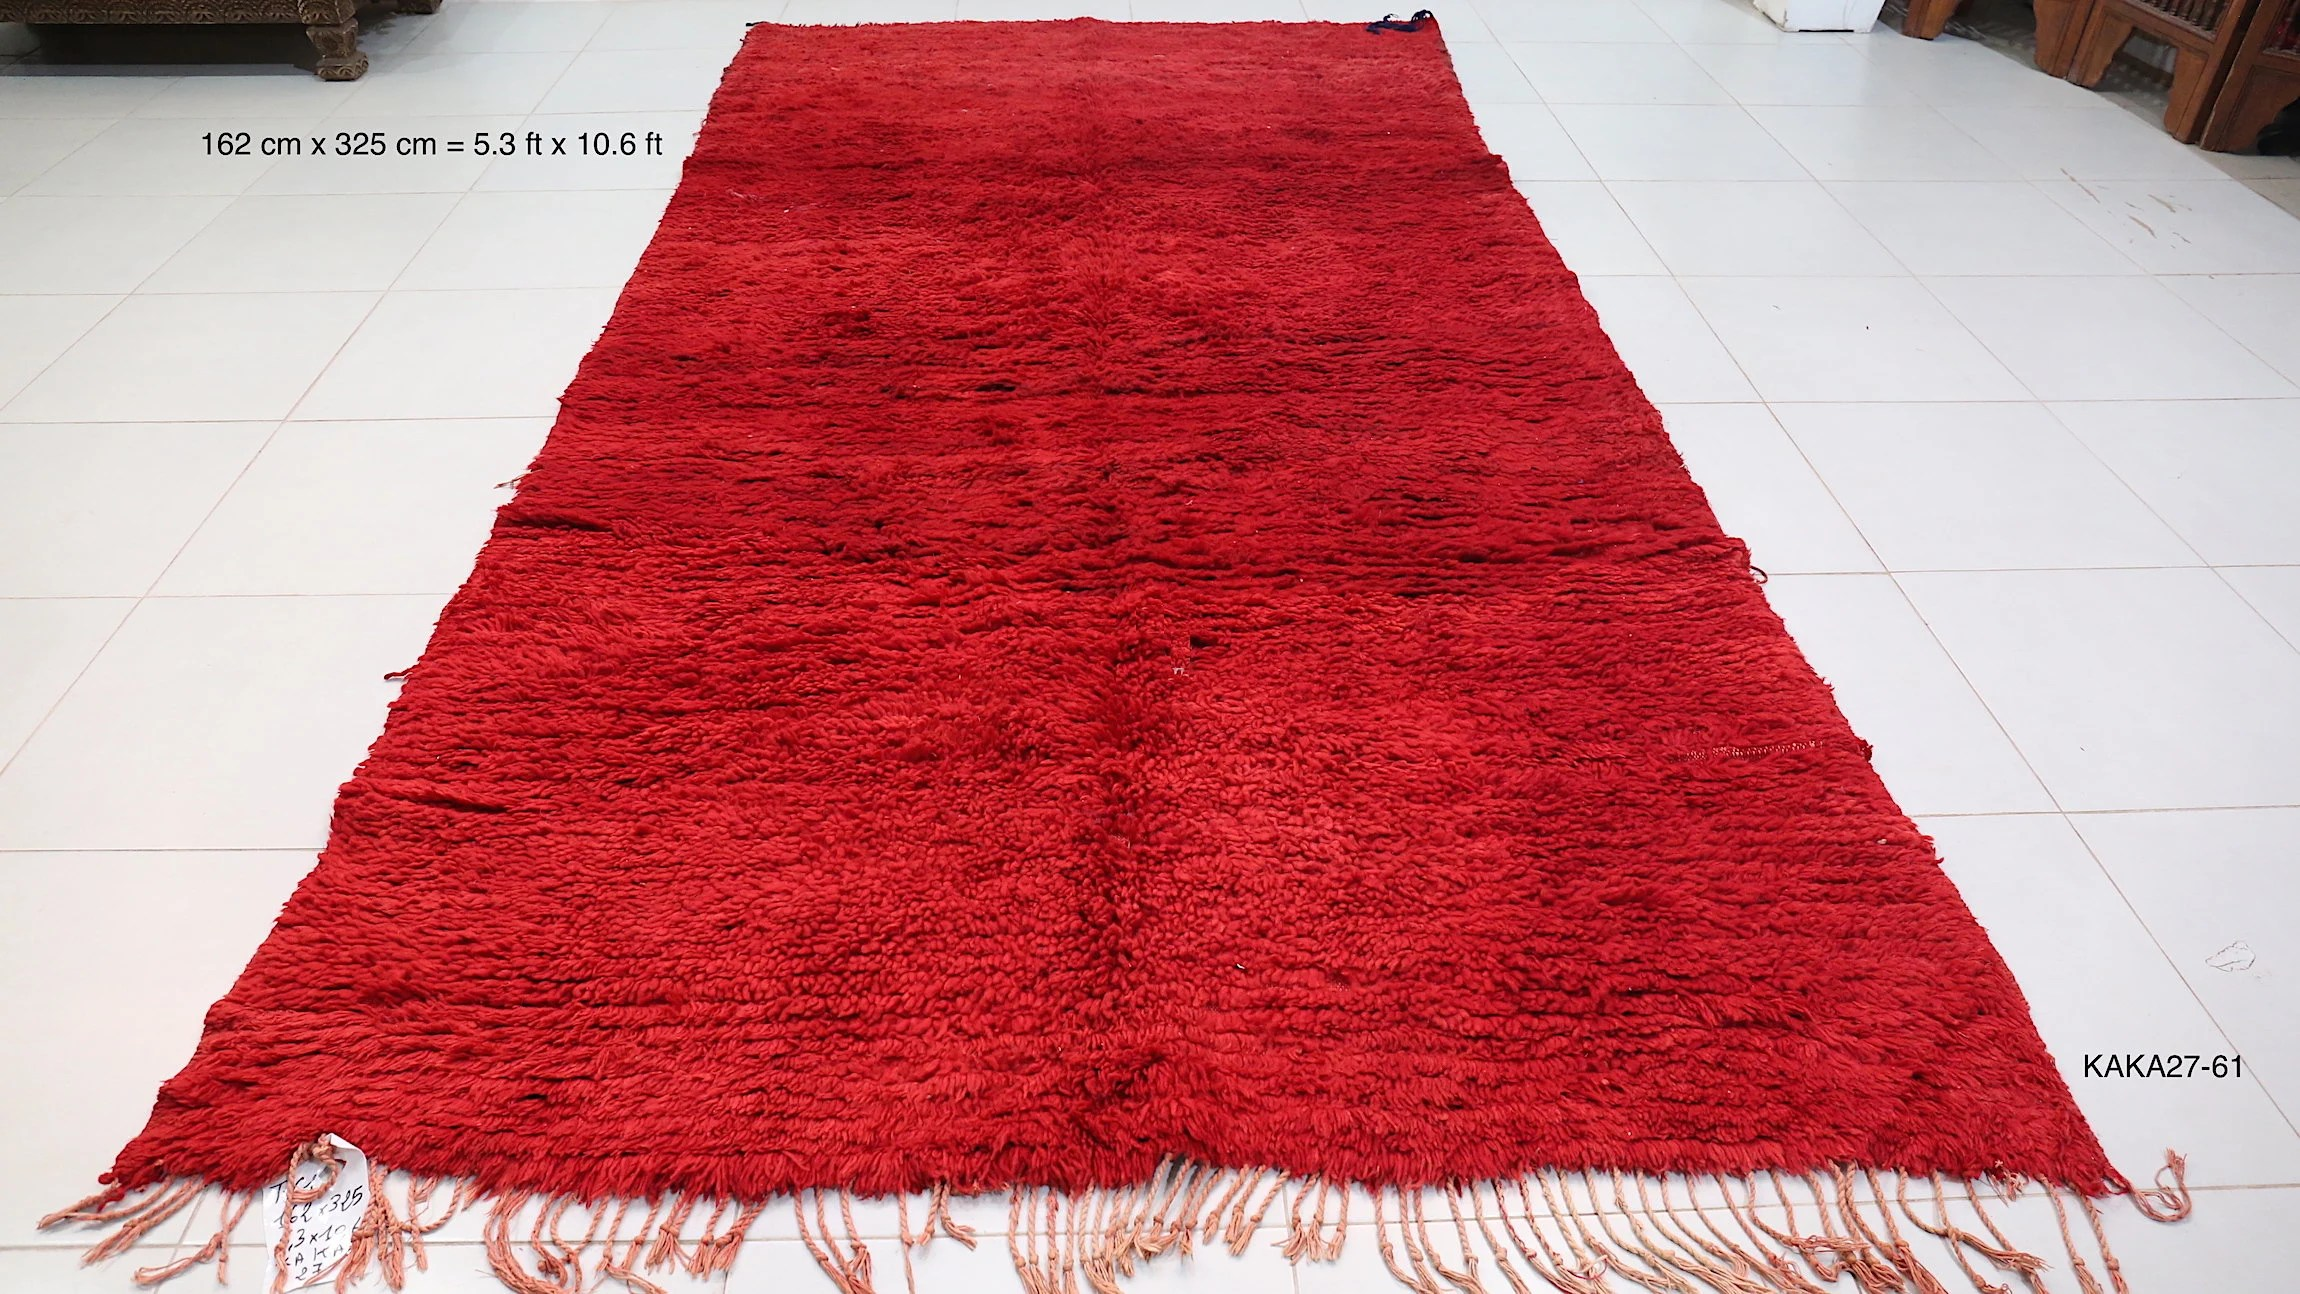 Teppich Vintage Design Solid Red Magnificent Berber Rug 5 3ft X 10 6ft Vintage Moroccan Rug Plain Teppich Tapis All Wool Handmade Beni Ourain Vintage Rug